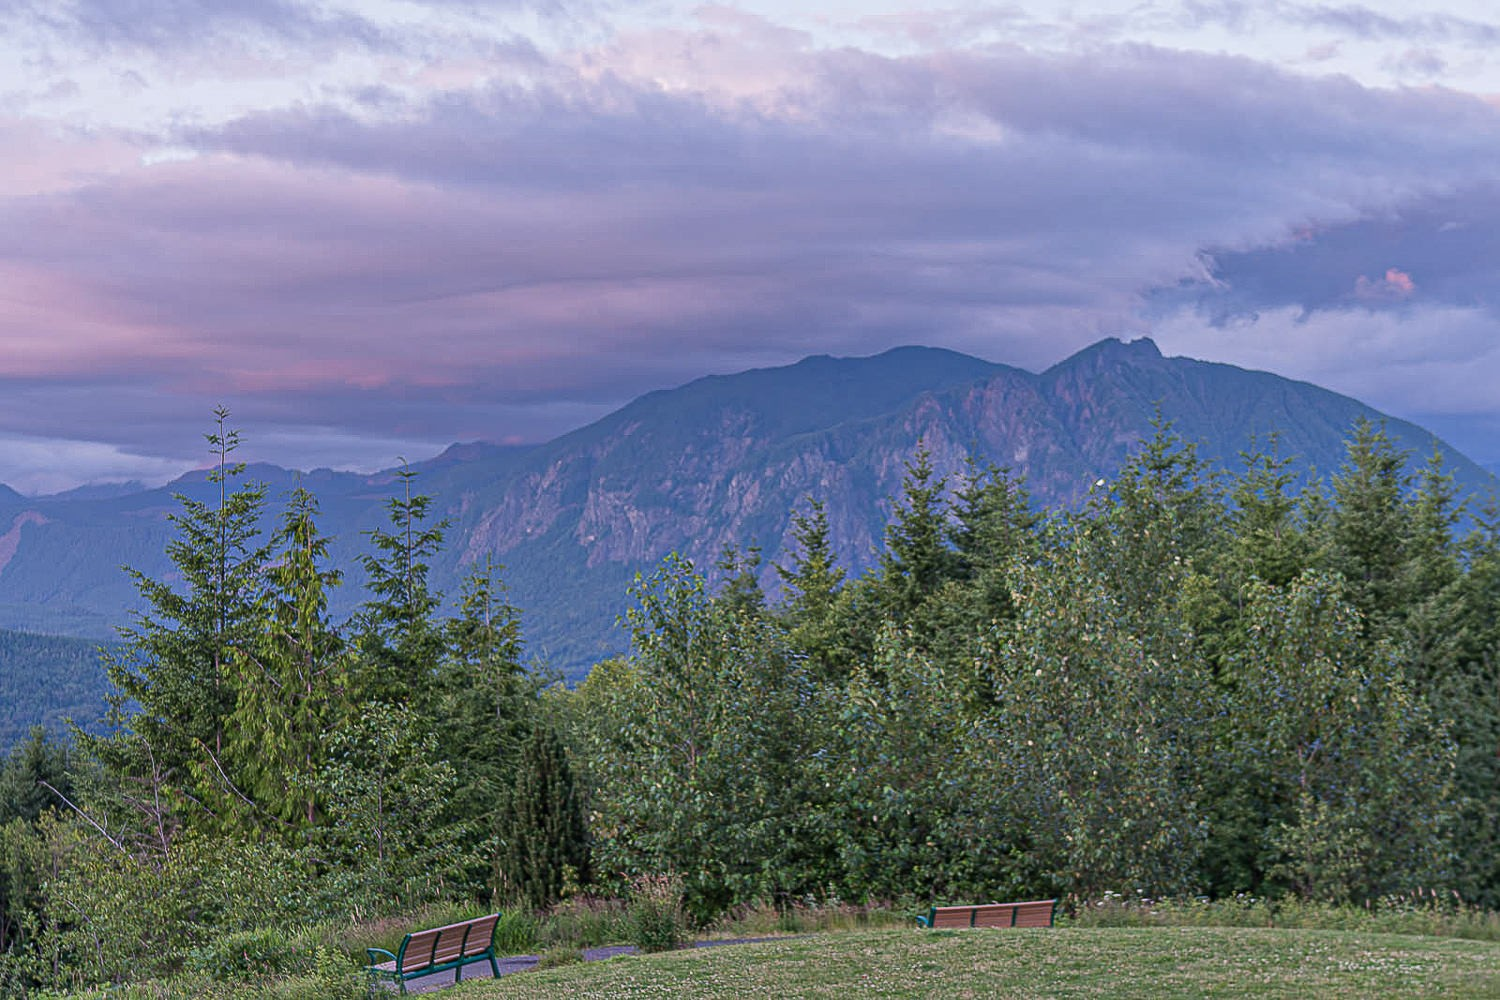 Snoqualmie Valley Elopement Photographer, View of sunset from Snoqualmie Viewpoint